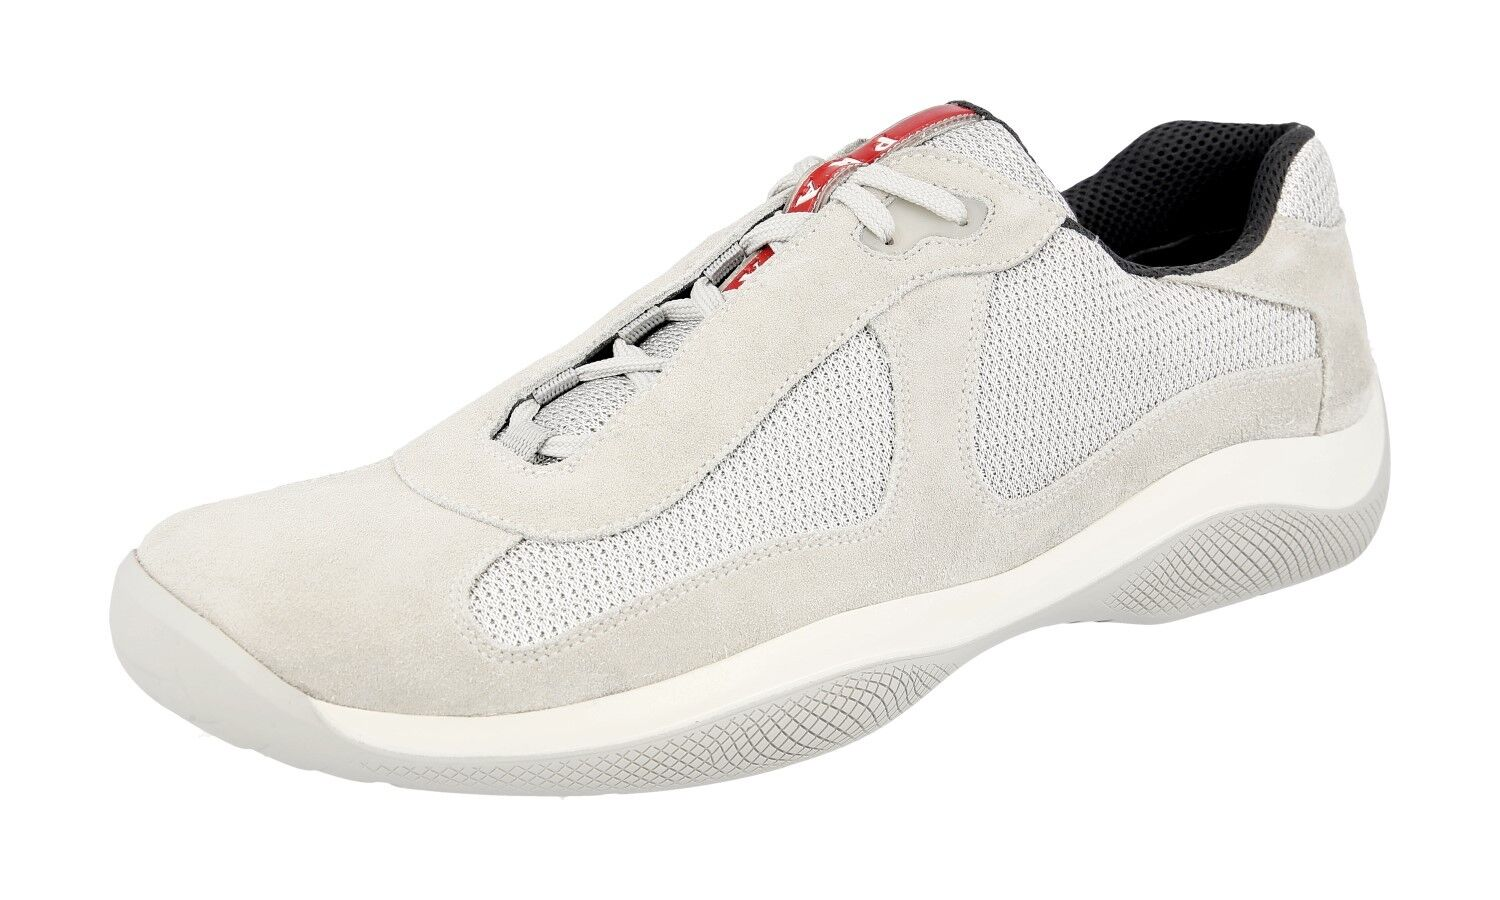 SCARPE PRADA LUSSO  AMERICAS CUP CUP CUP PS0906 TALCO NUOVE 11 45 45,5 0305d9